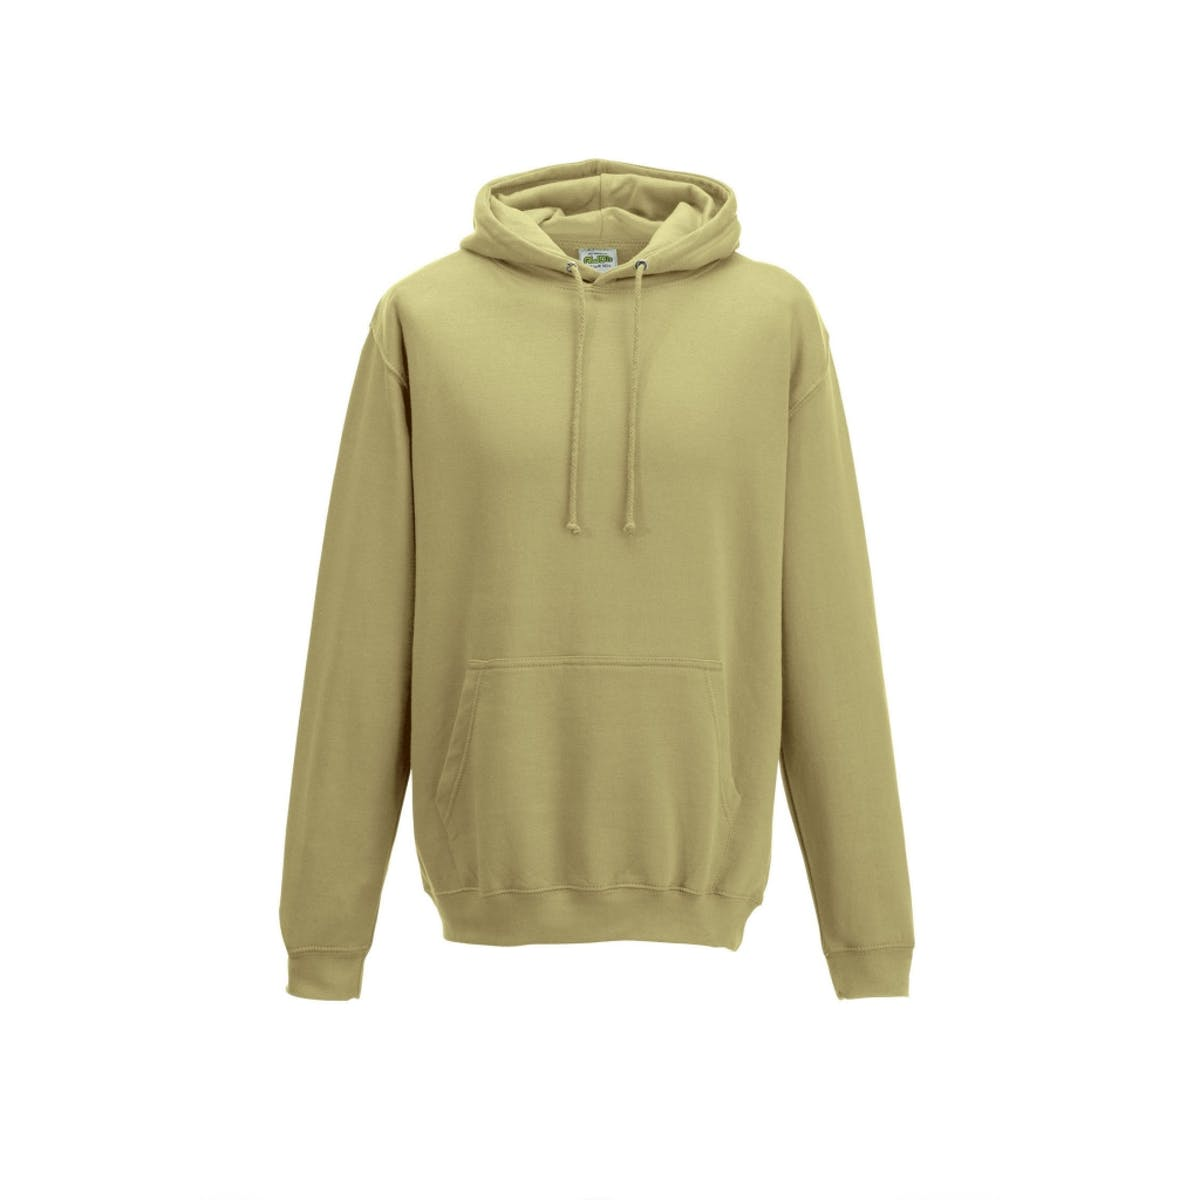 desert sand college hoodies